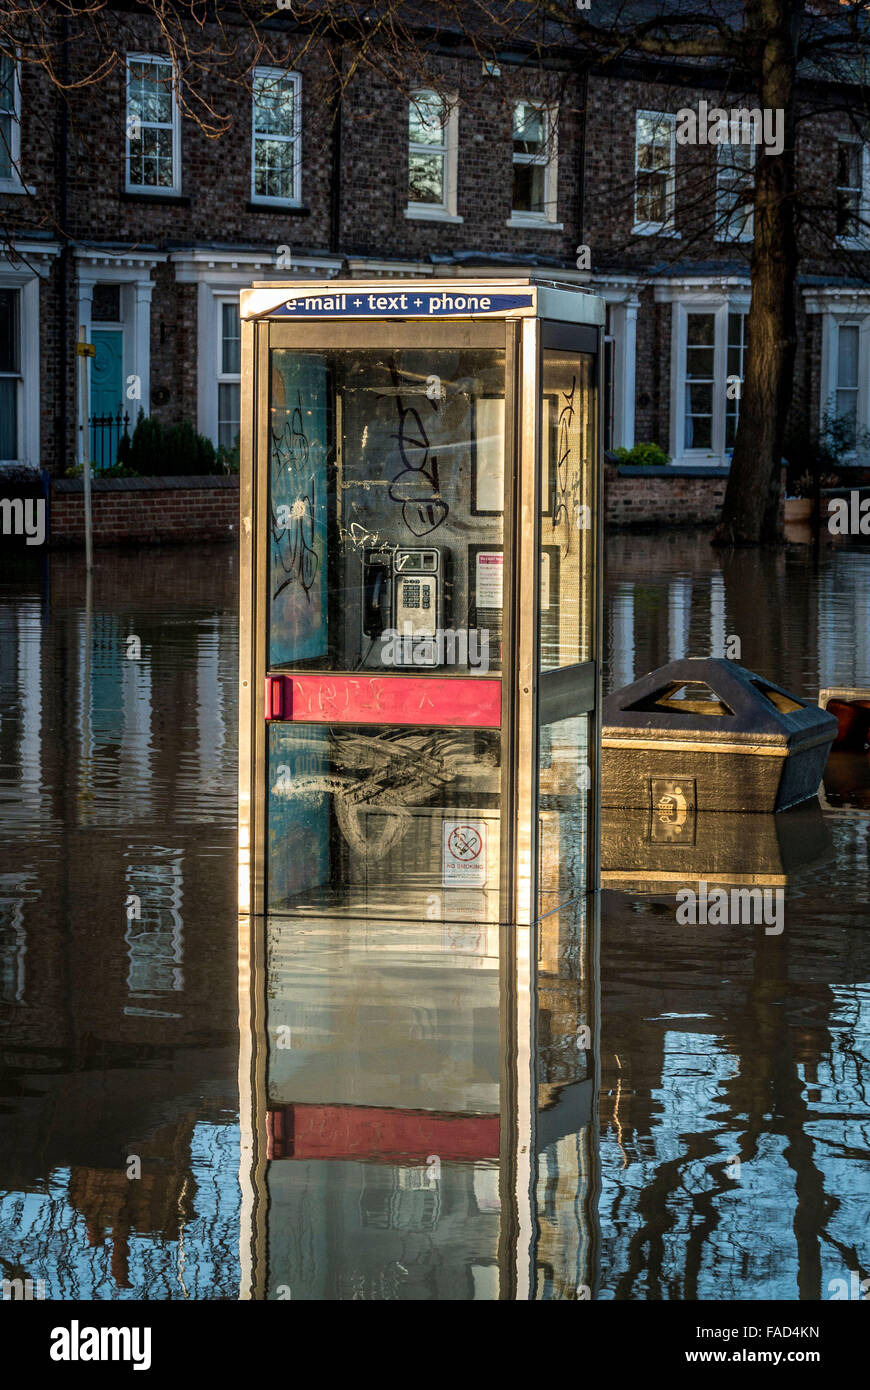 York, UK. 27th December, 2015. Widespread disruption continues in York due to flooding of the River Ouse and River Stock Photo